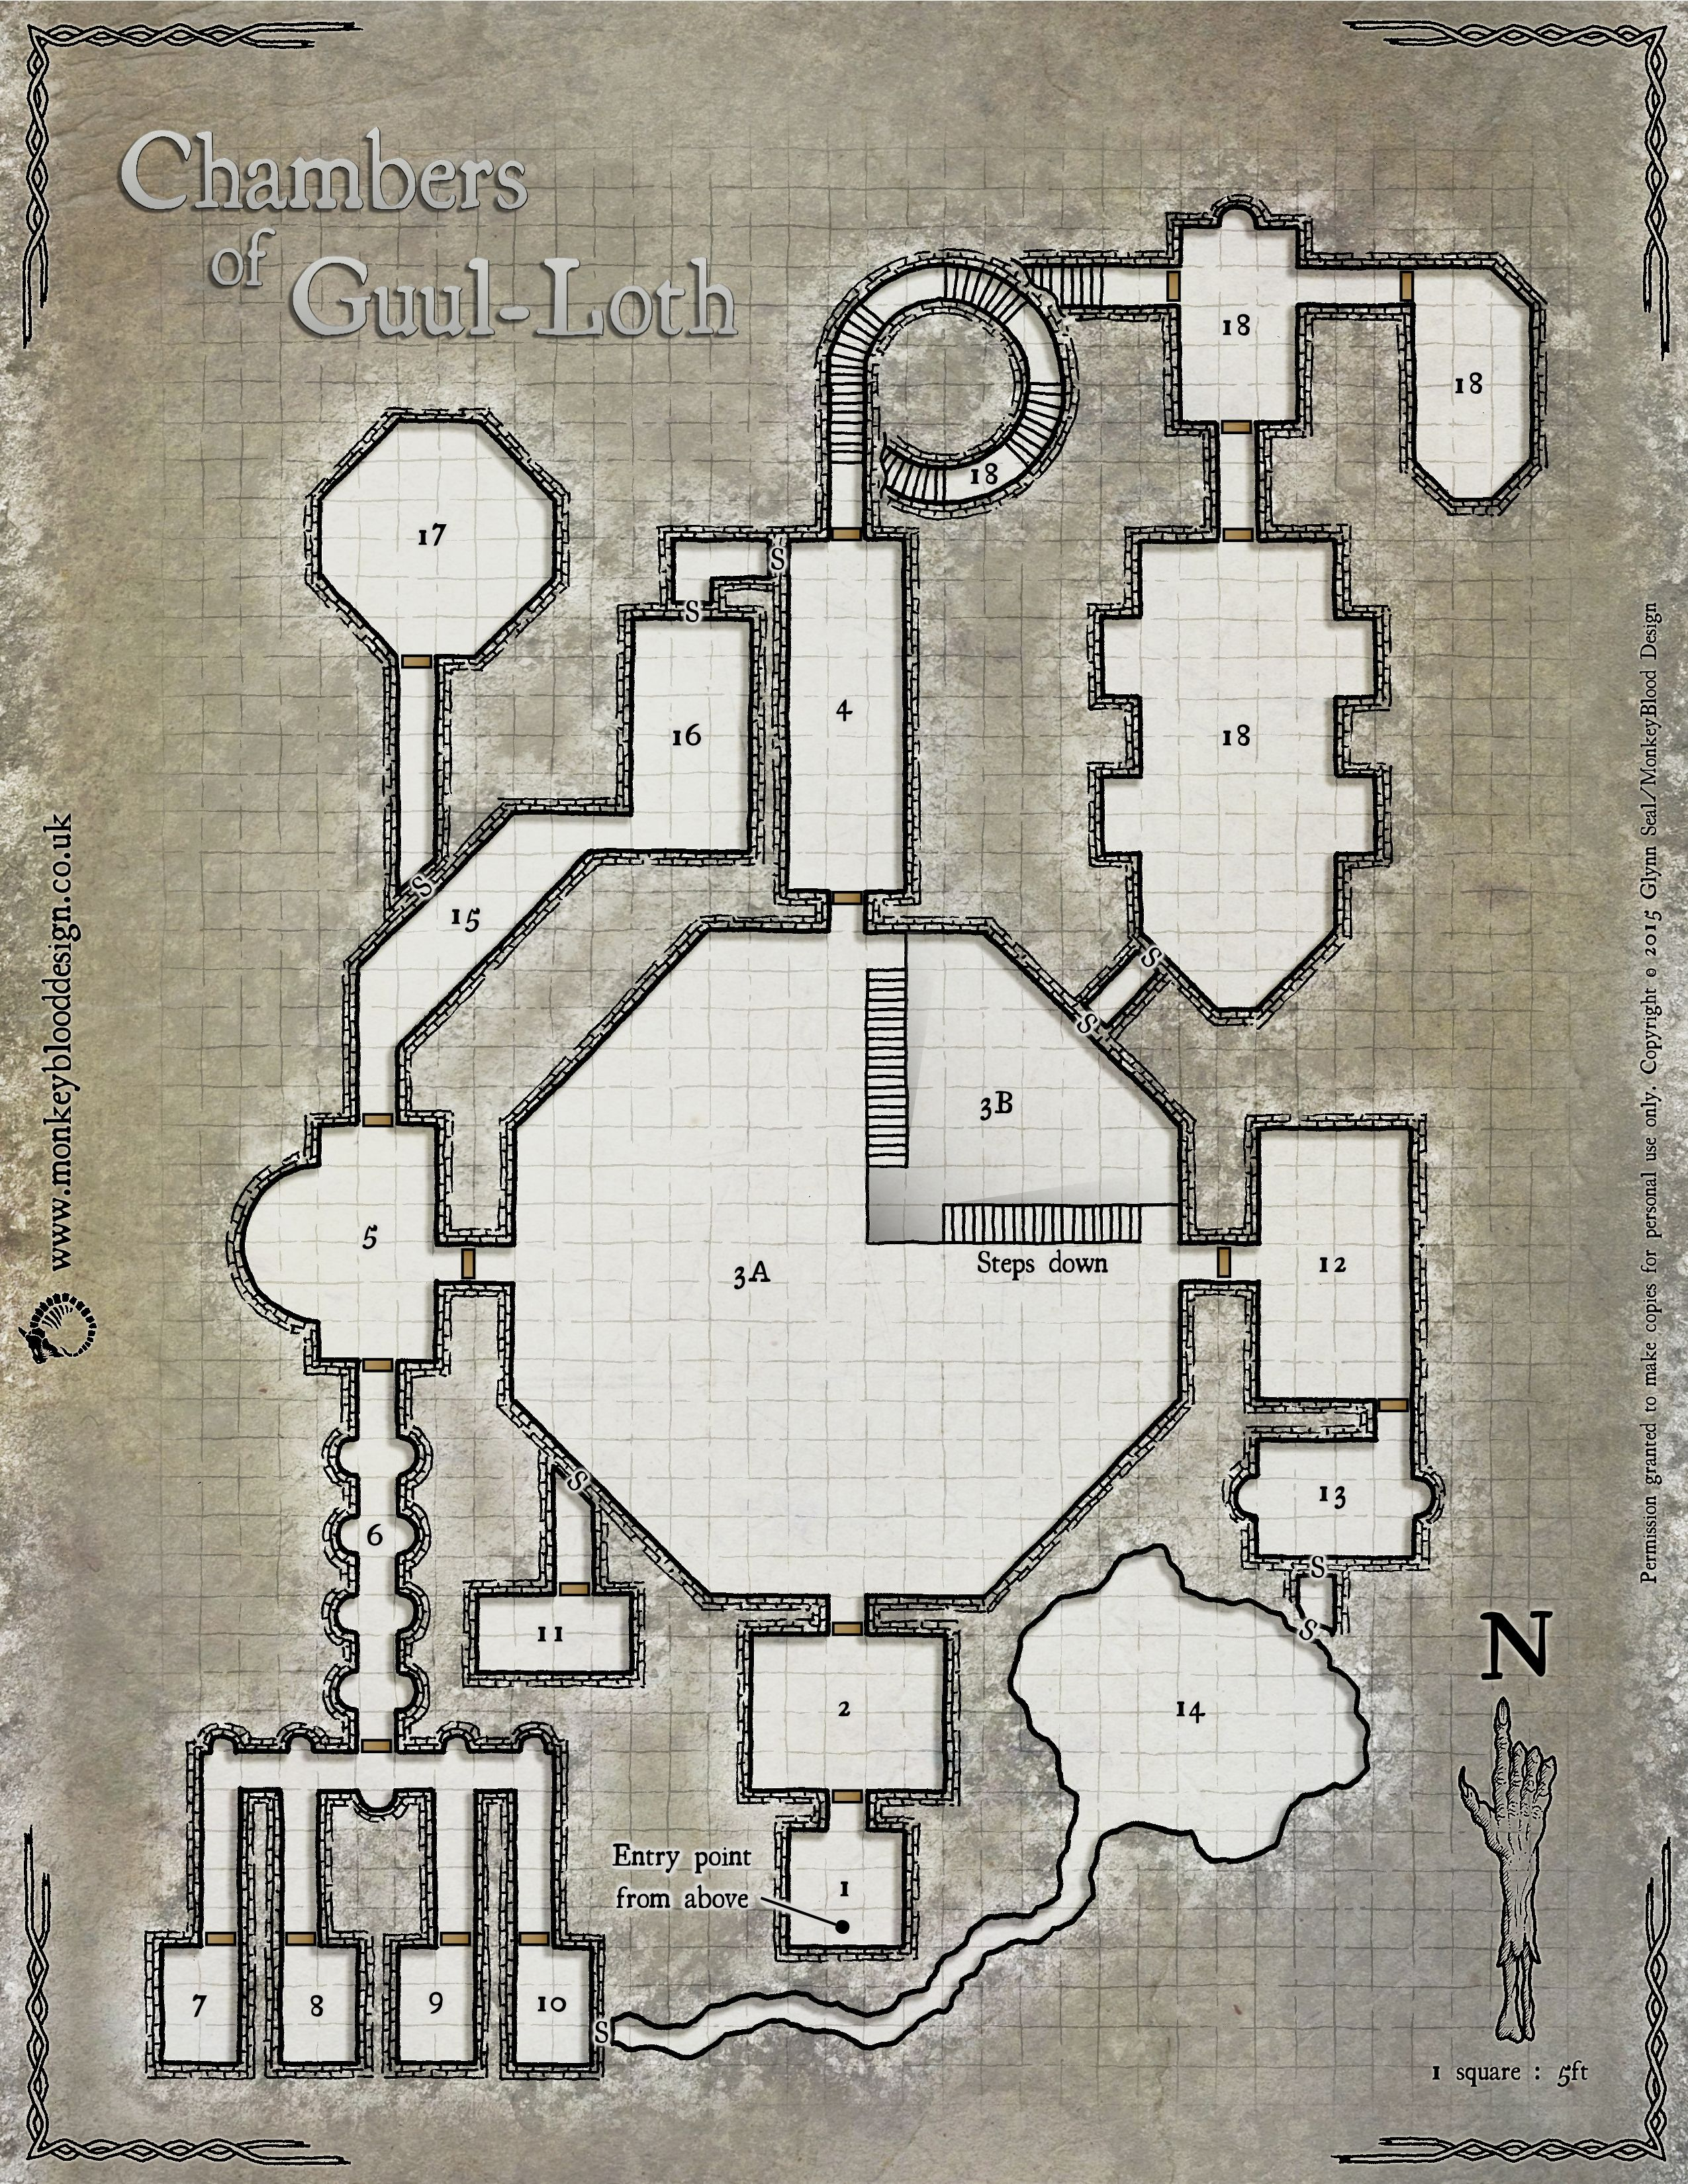 Pin by David McGuire on Gaming Maps in 2019 | Dungeon maps, Fantasy